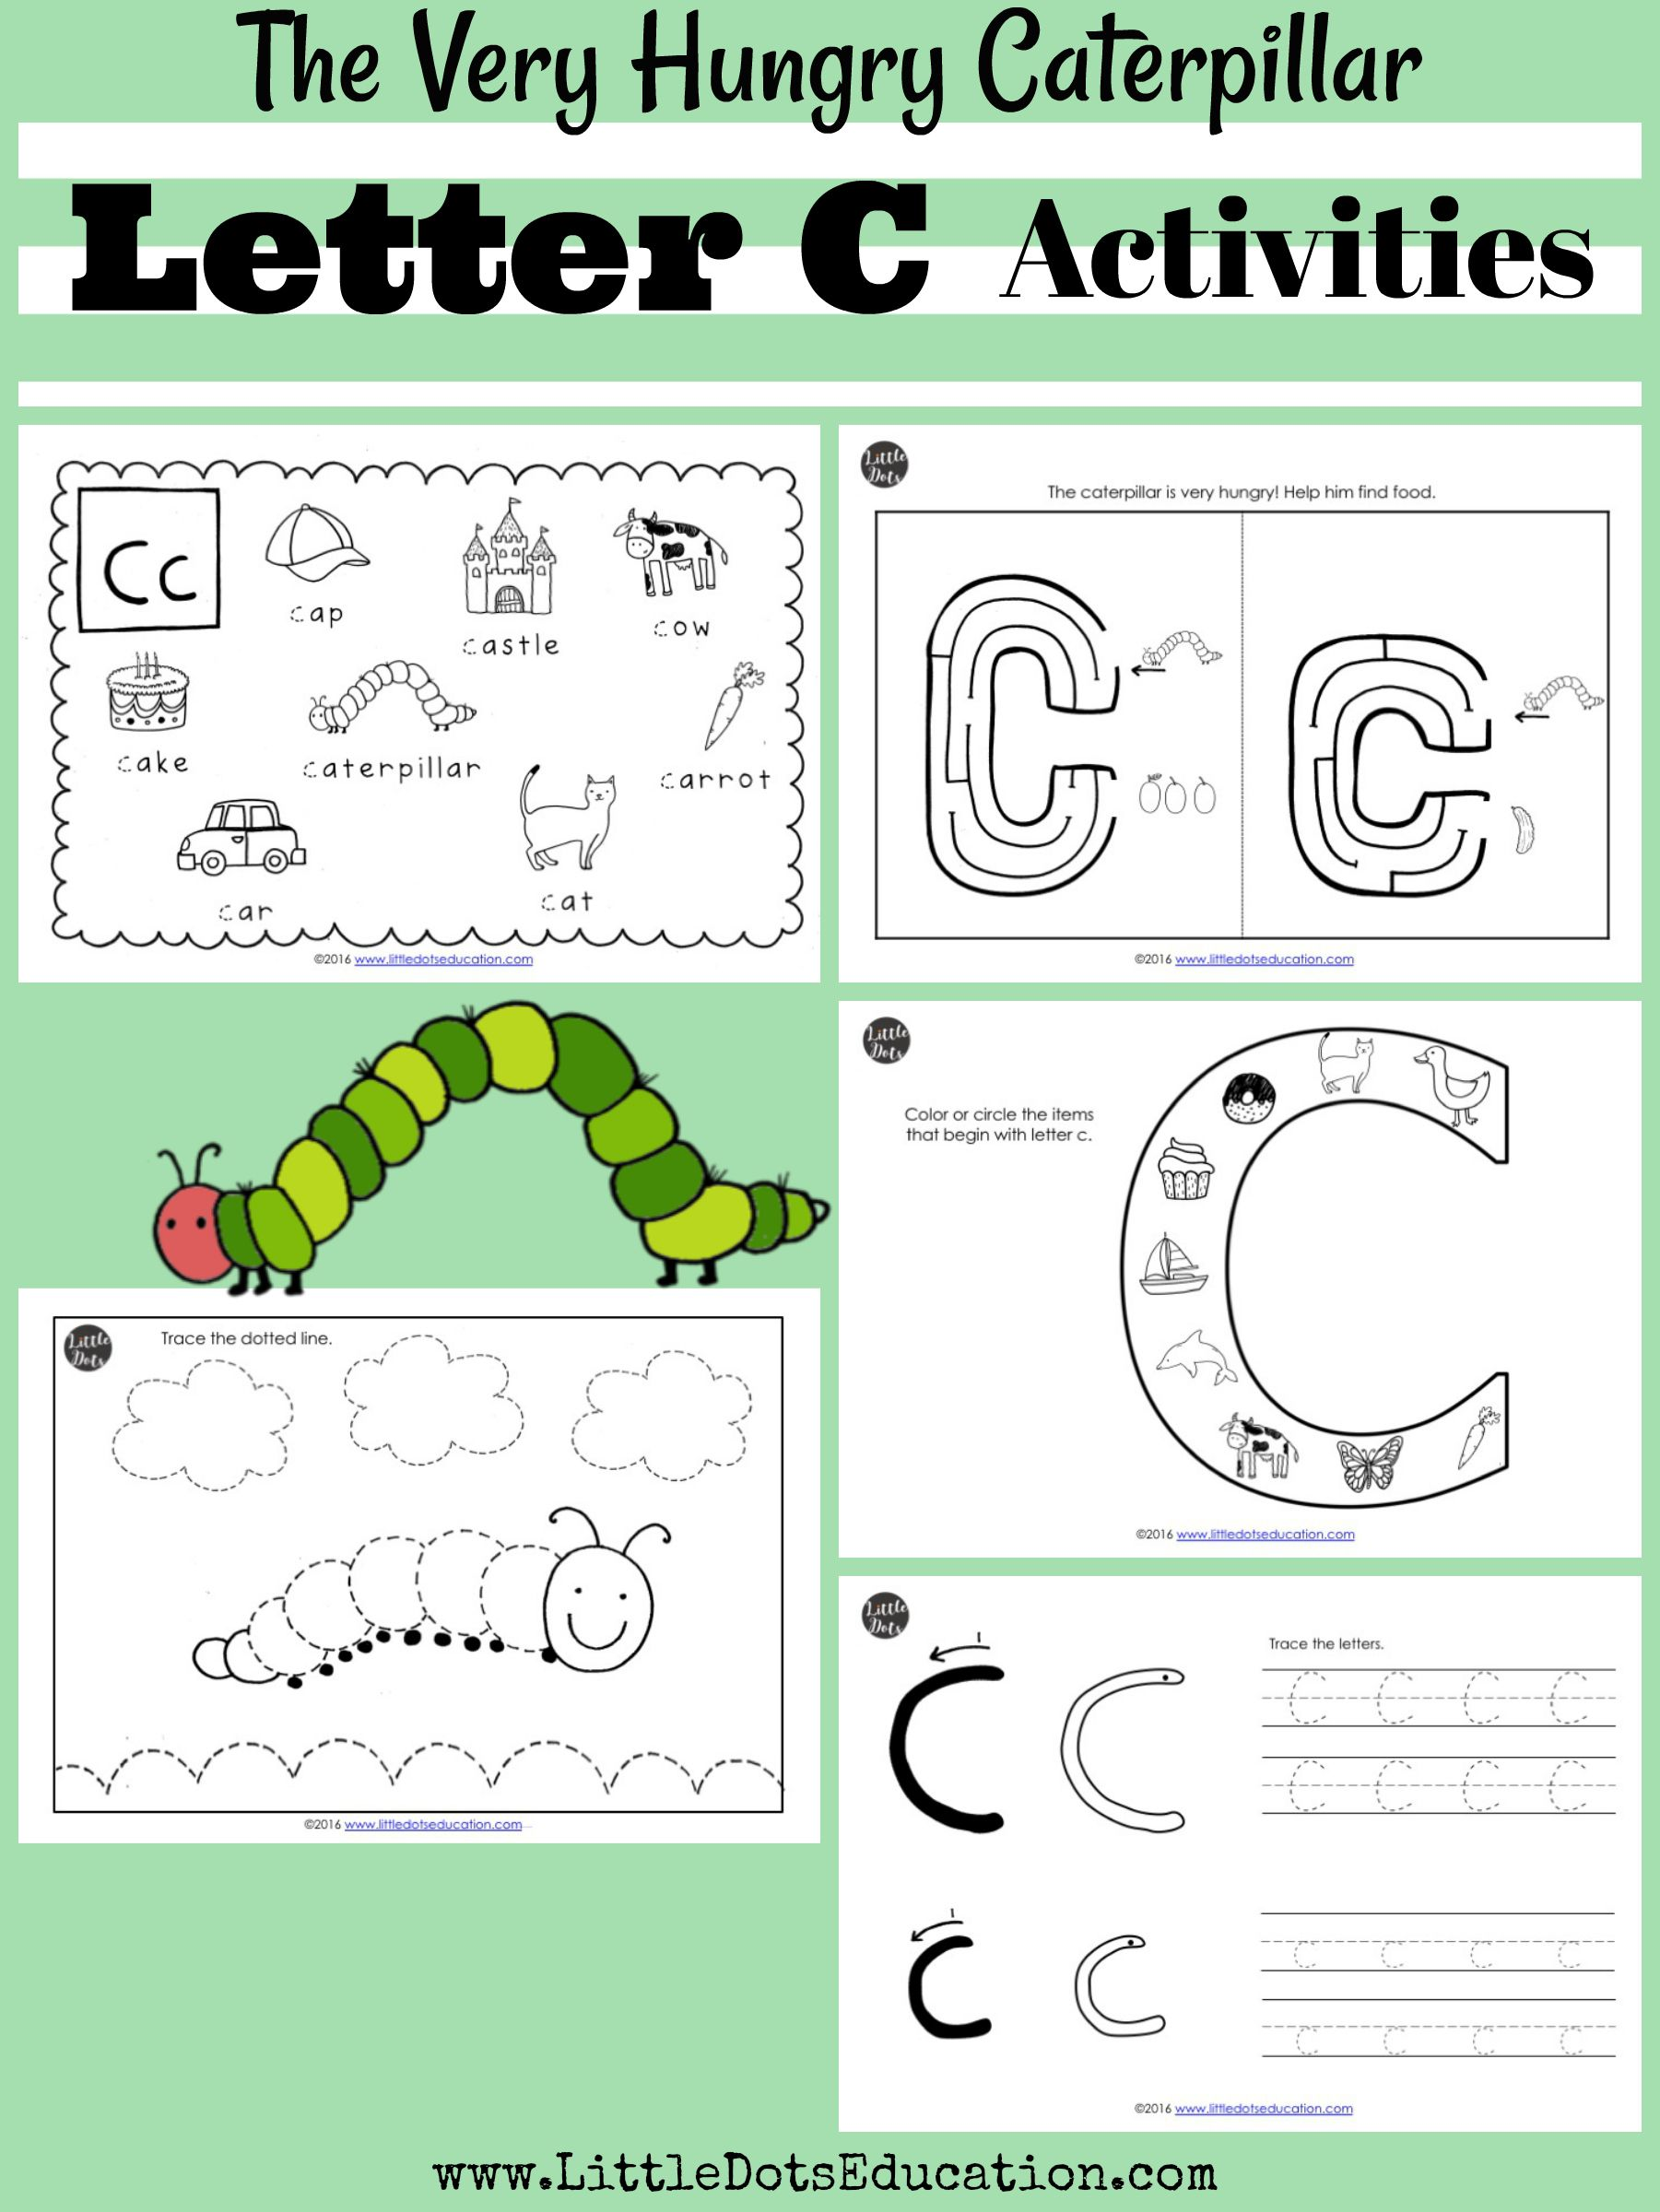 C Caterpillar Preschool Printable Worksheet C Best Free